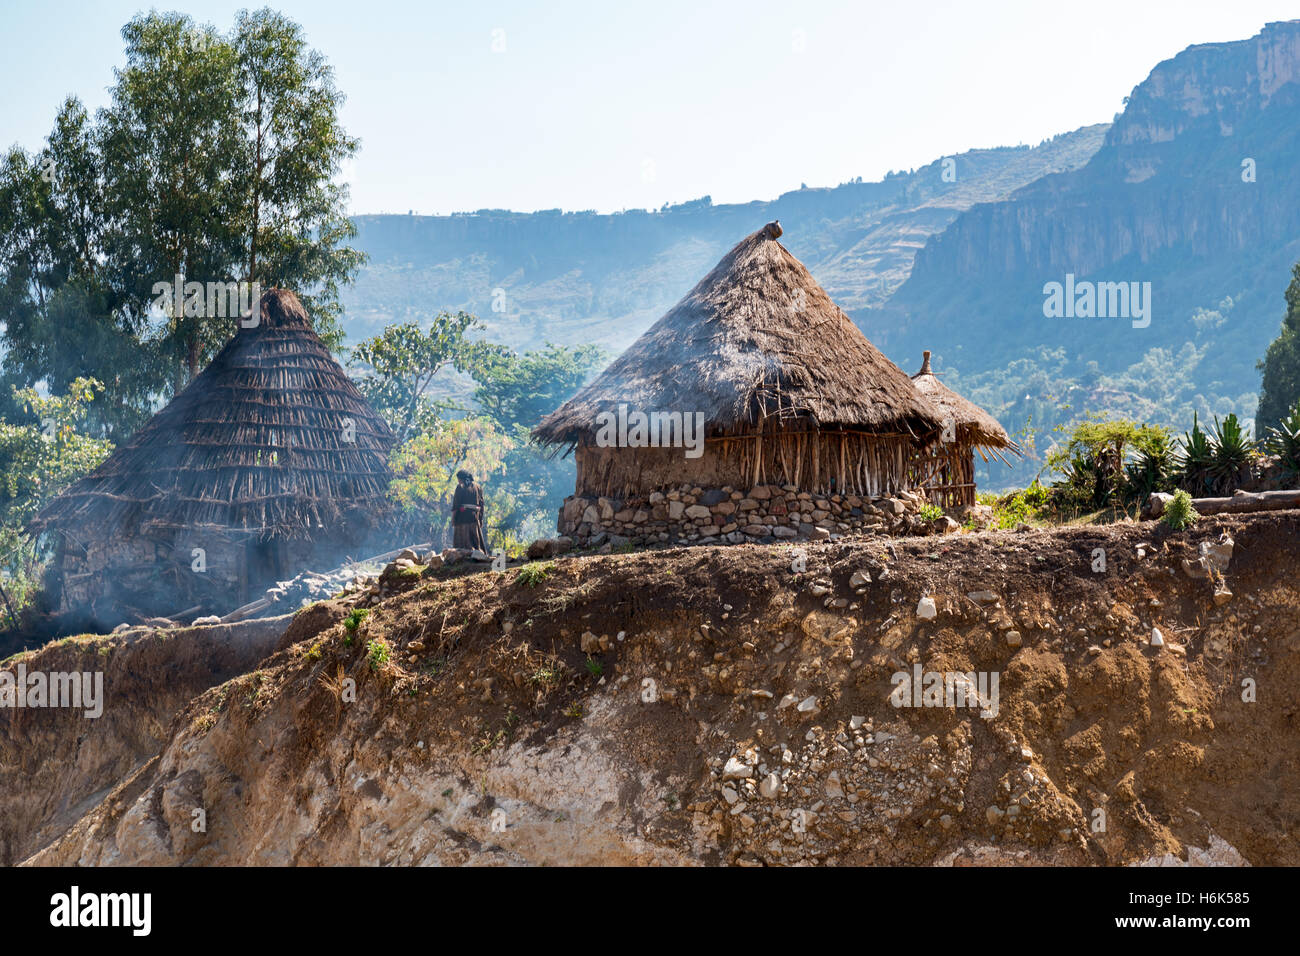 Ethiopia, Lalibela,  farmer's huts in the outskirts of the country. - Stock Image